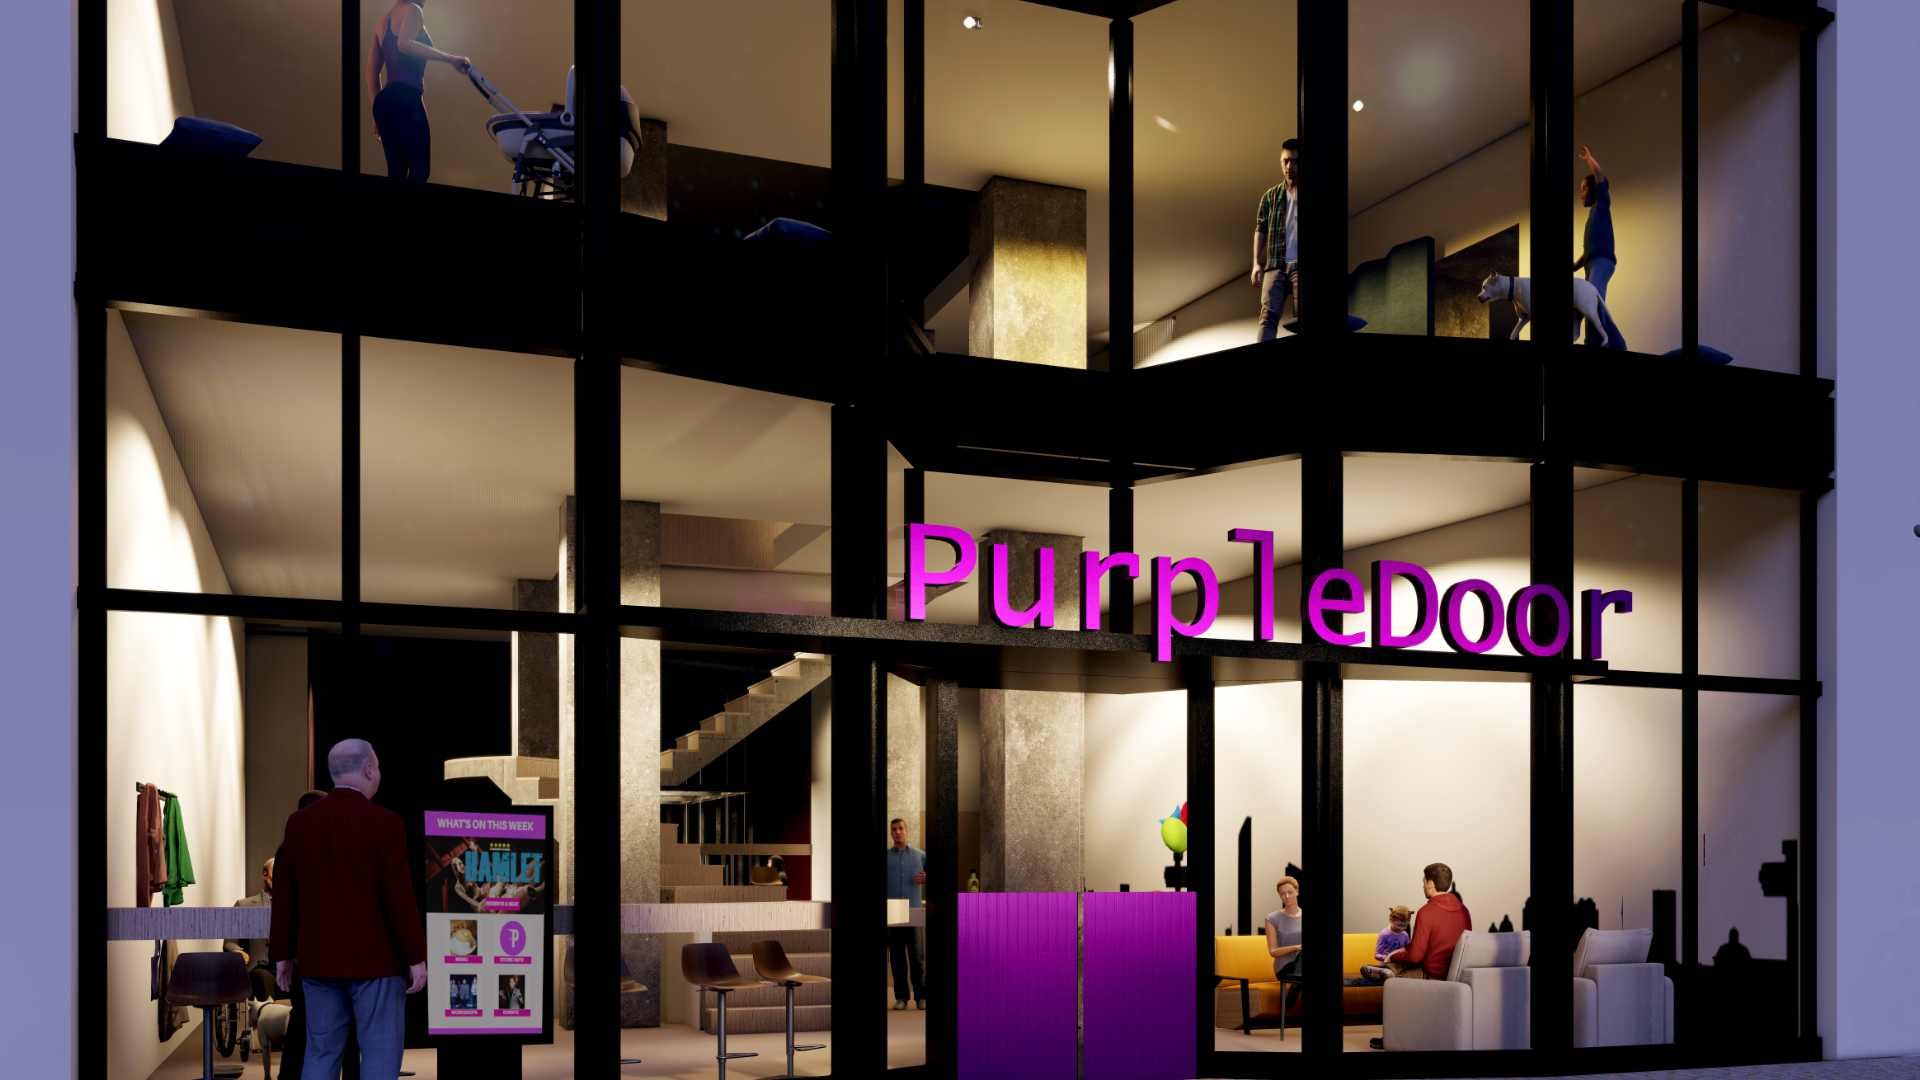 exterior of the purpledoor